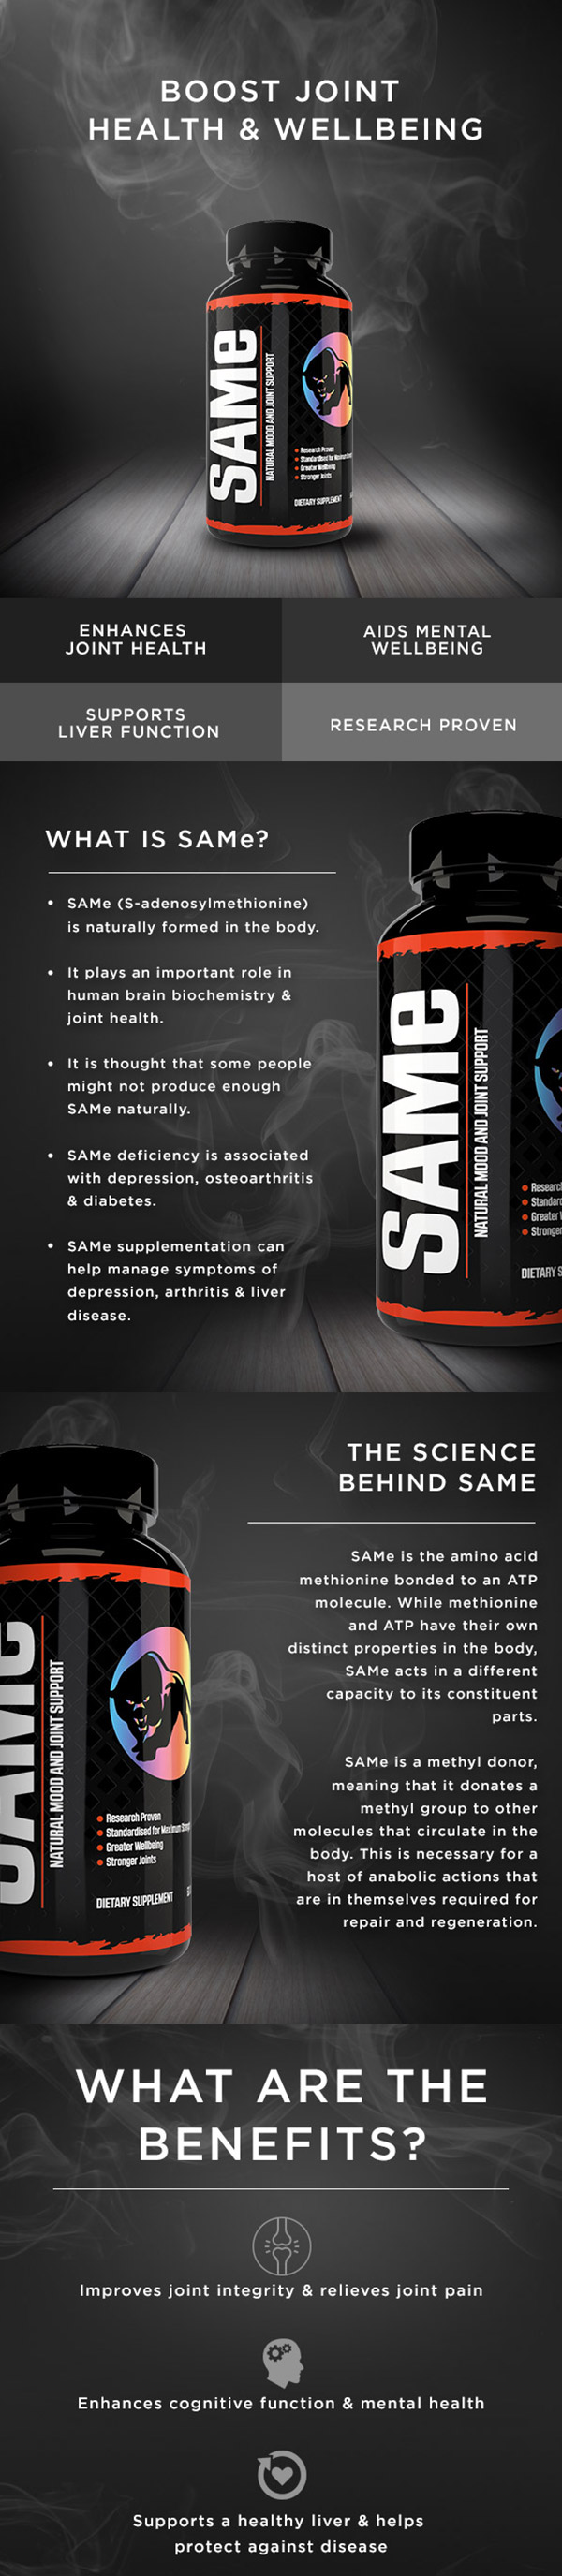 Predator Nutrition SAMe Infographic